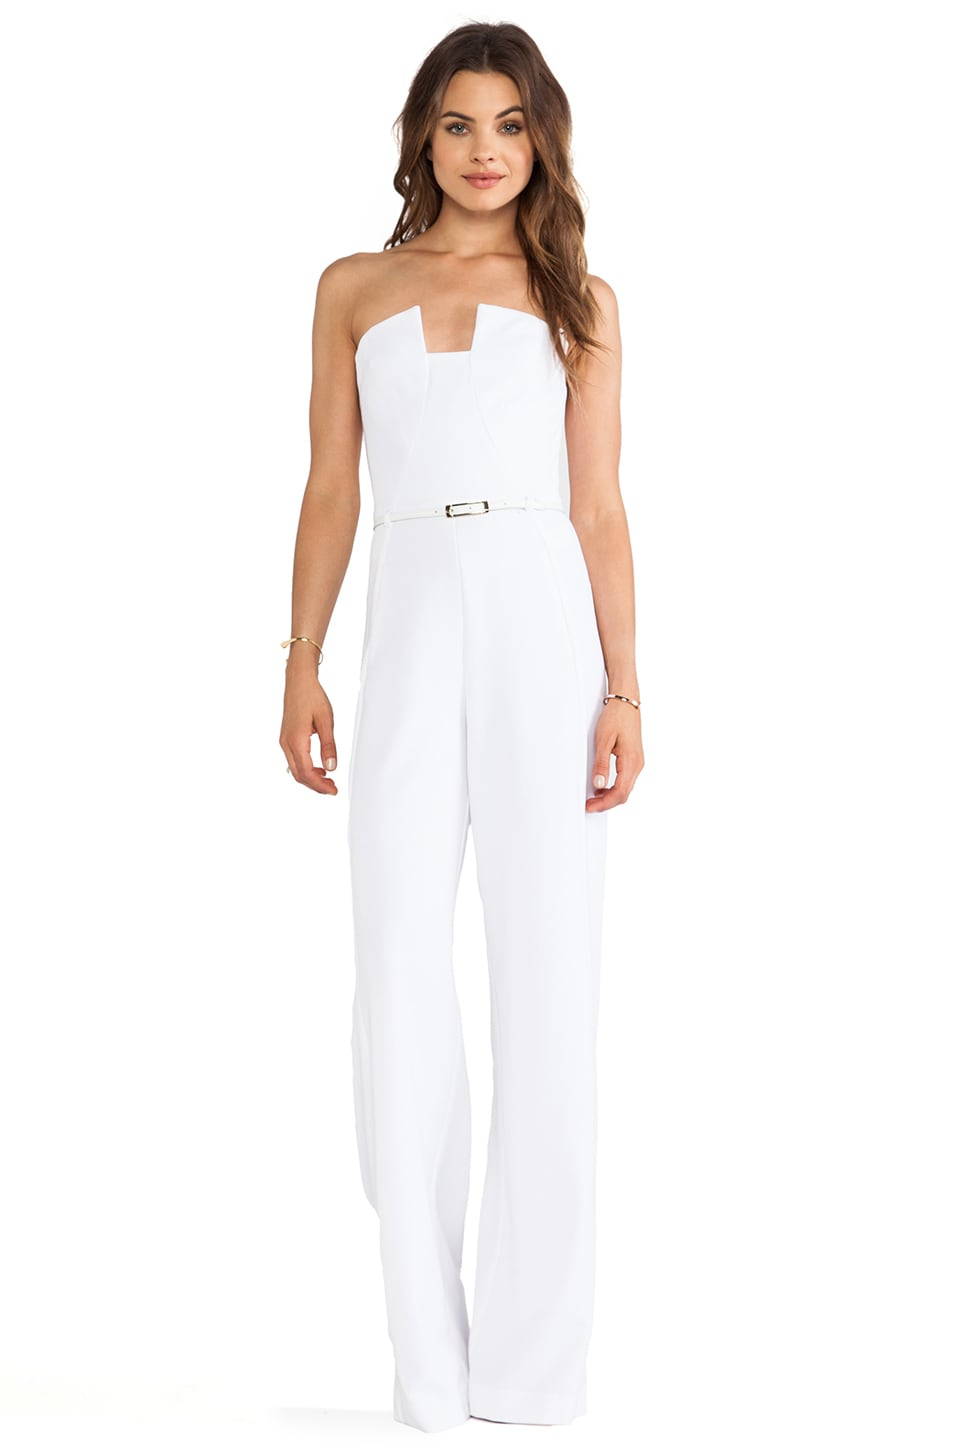 Black Halo X REVOLVE Lena Jumpsuit in White